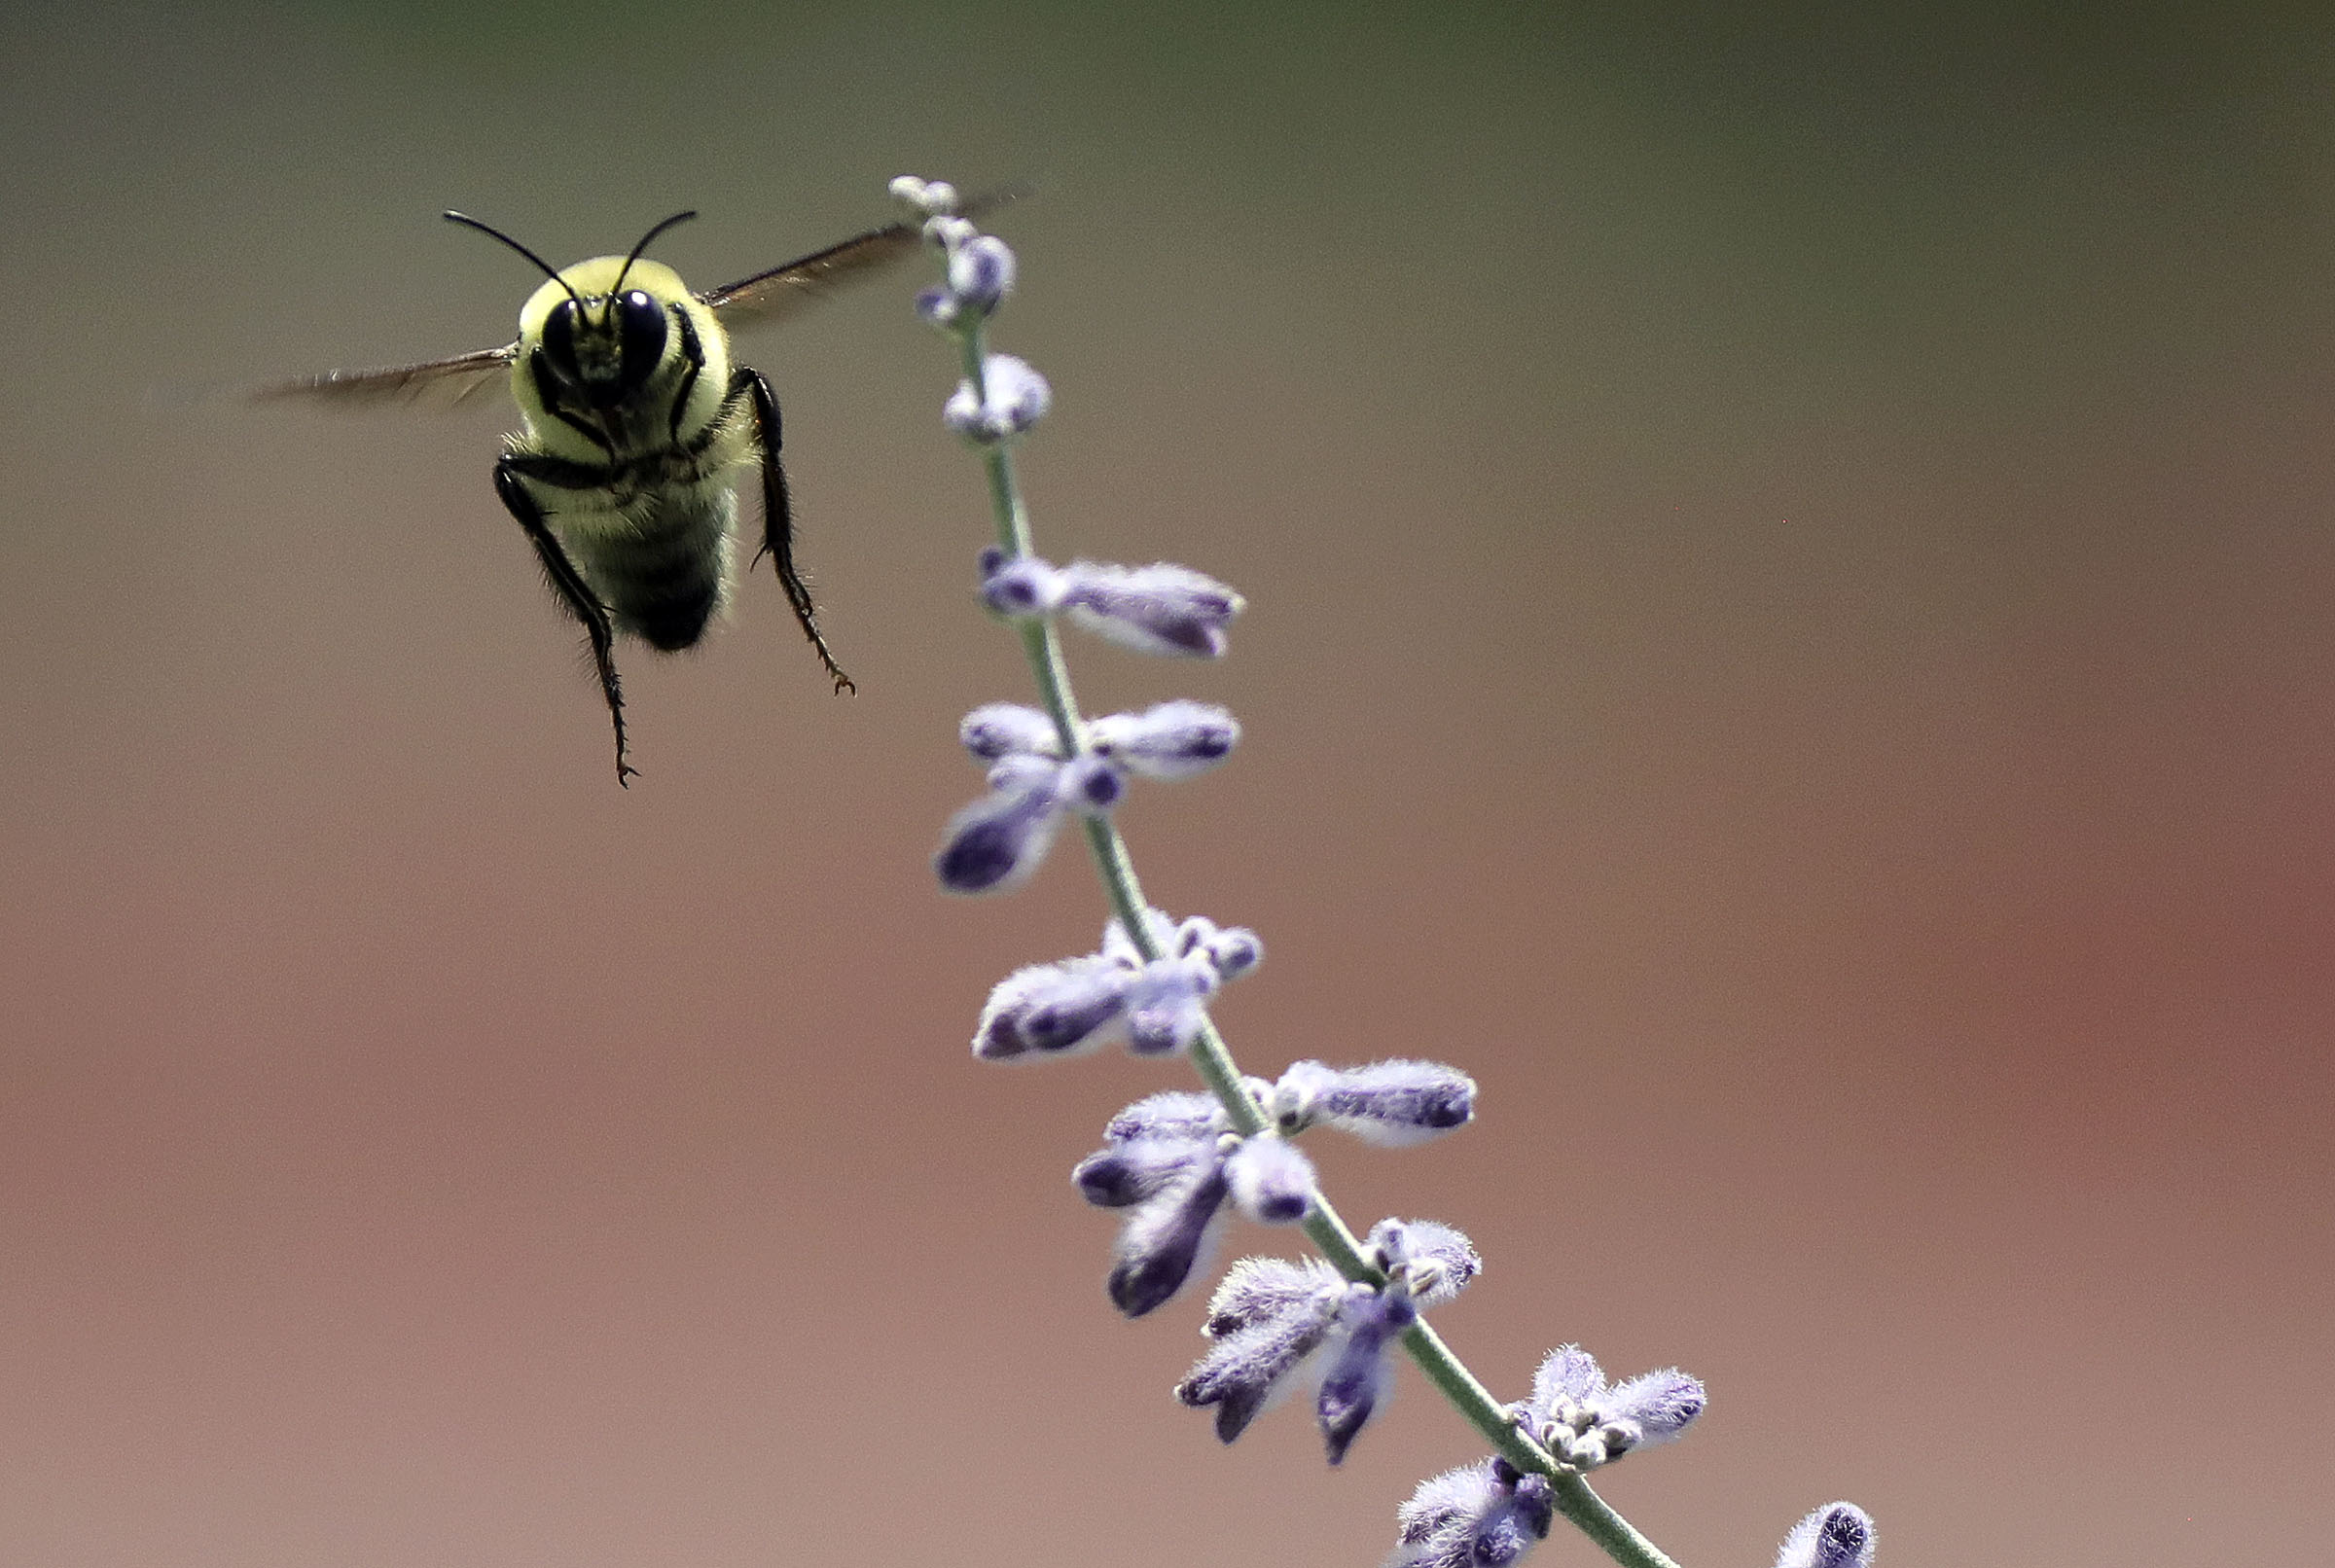 A bumblebee flies near a lavender bush in the International Peace Gardens in Salt Lake City on Friday, July 17, 2020.